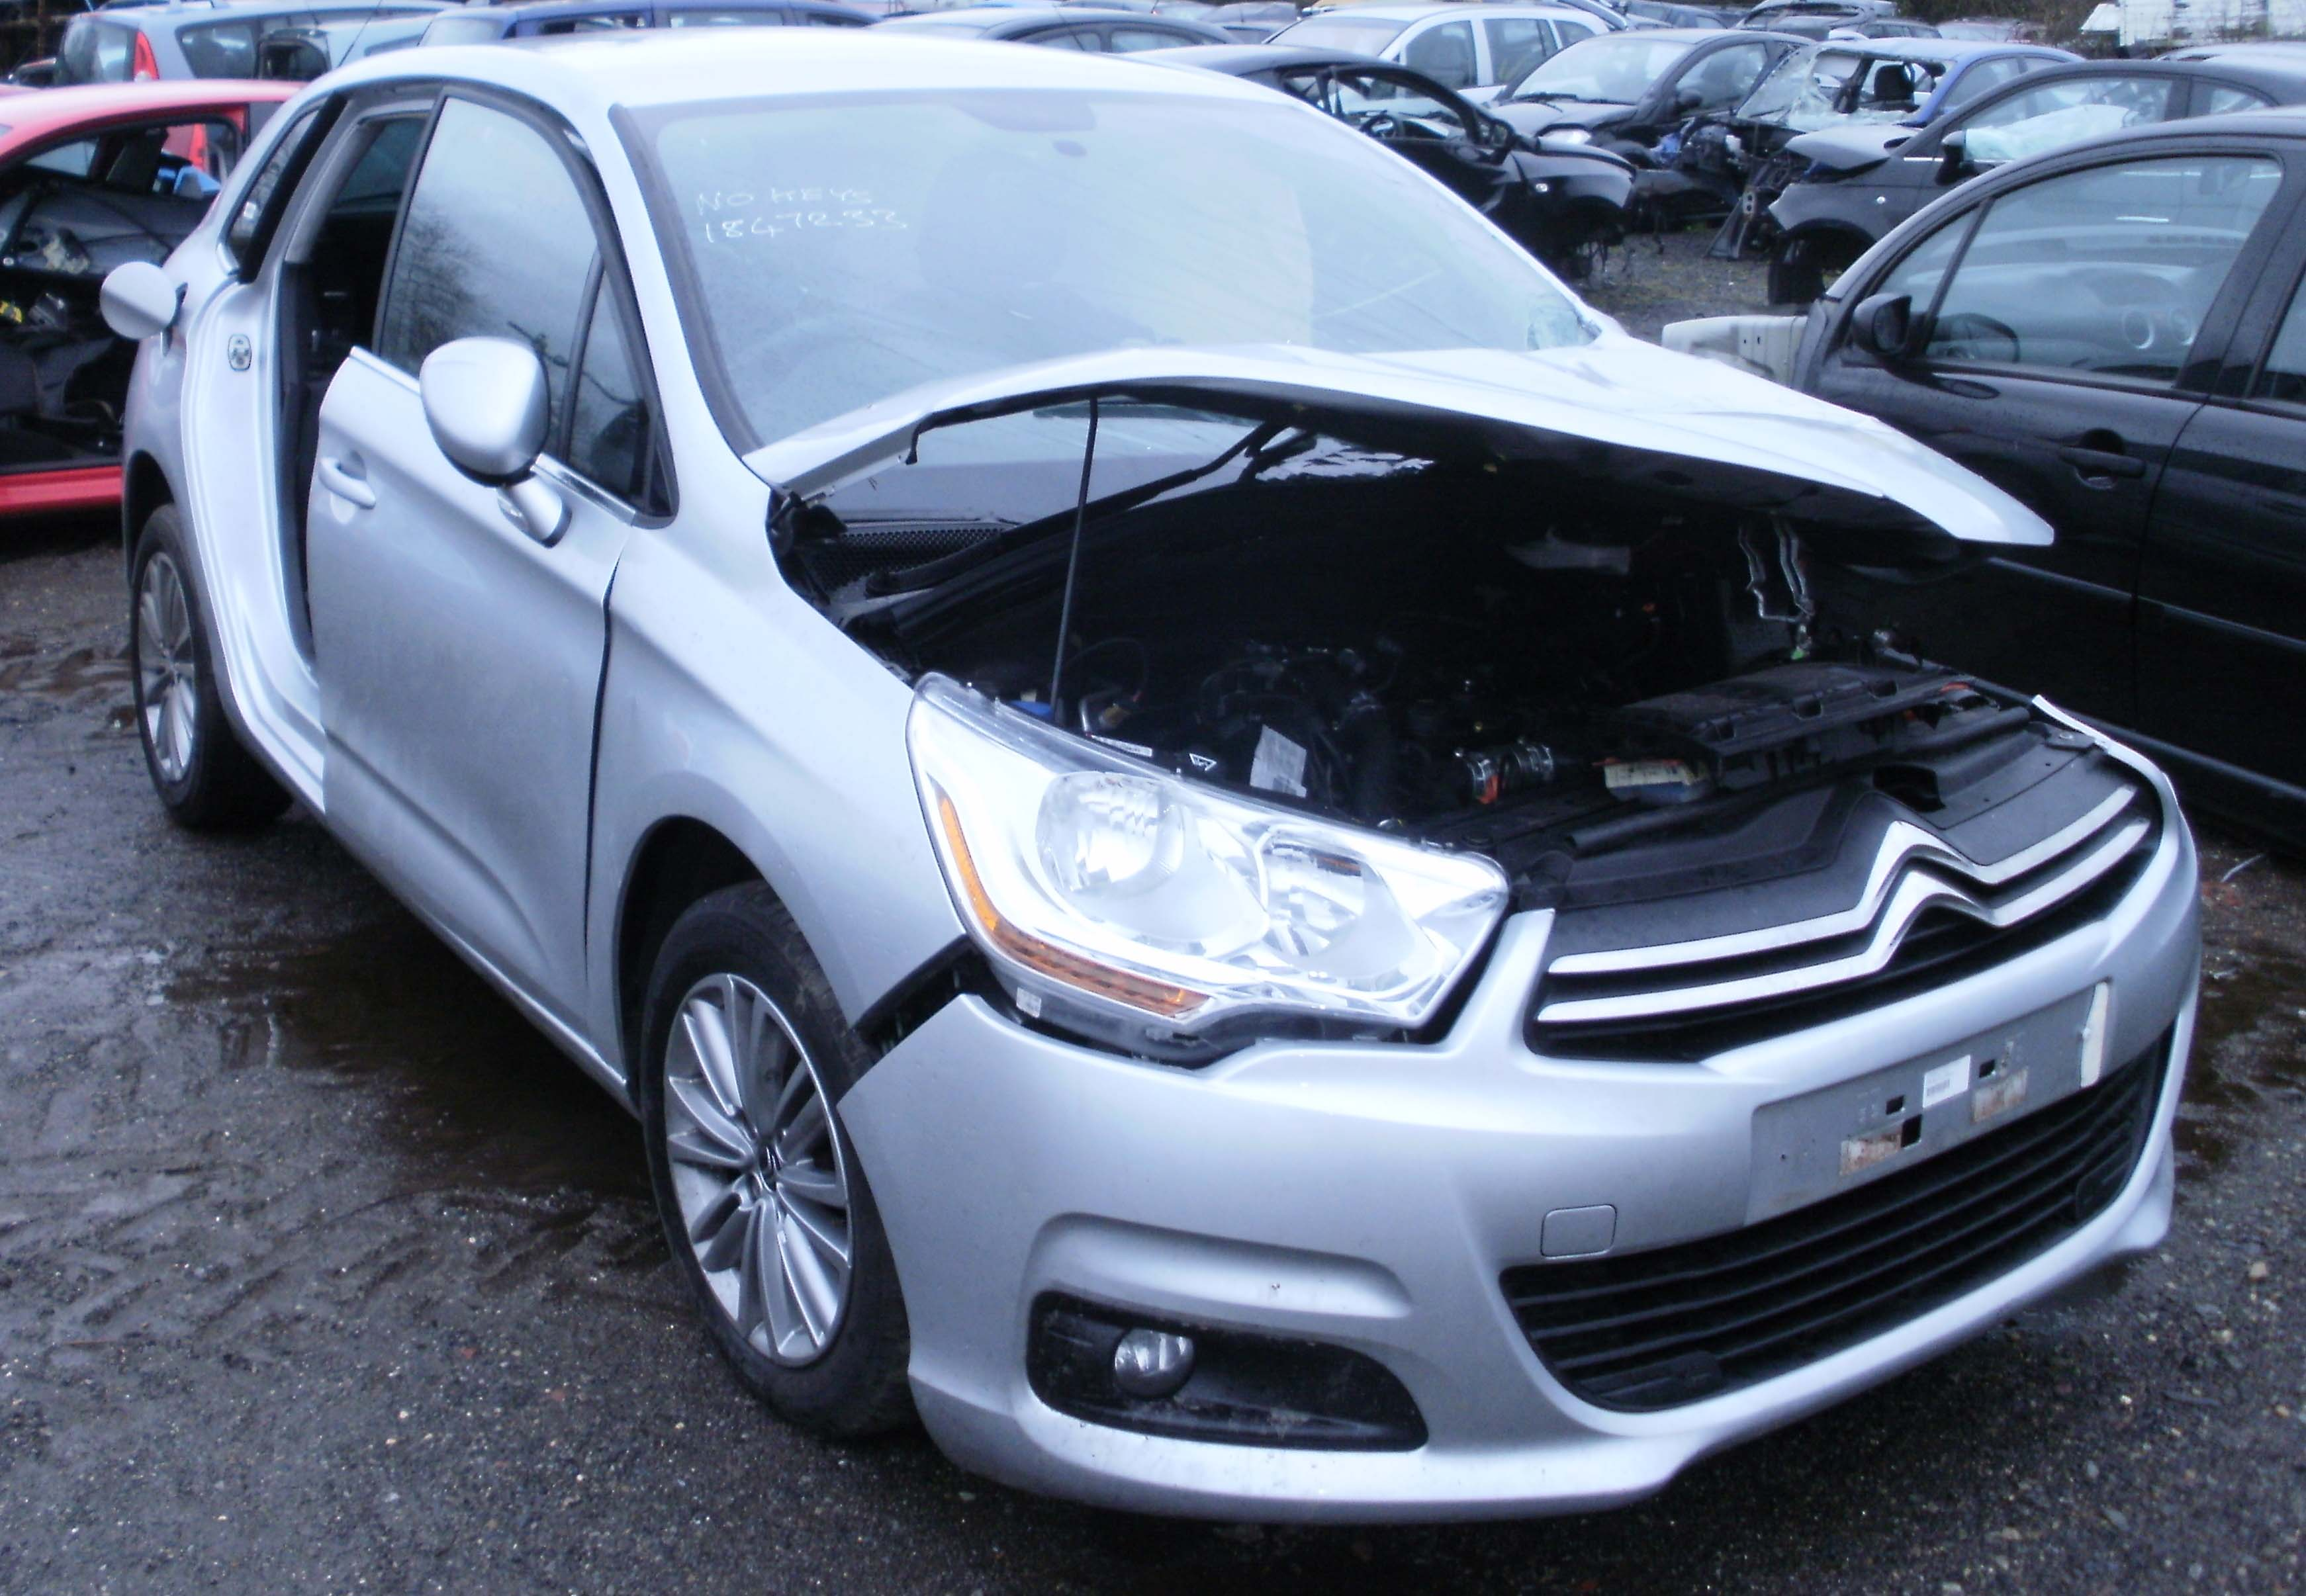 2012 citroen c4 vtr 1 6 hdi 91 breaking now melbourne autos. Black Bedroom Furniture Sets. Home Design Ideas